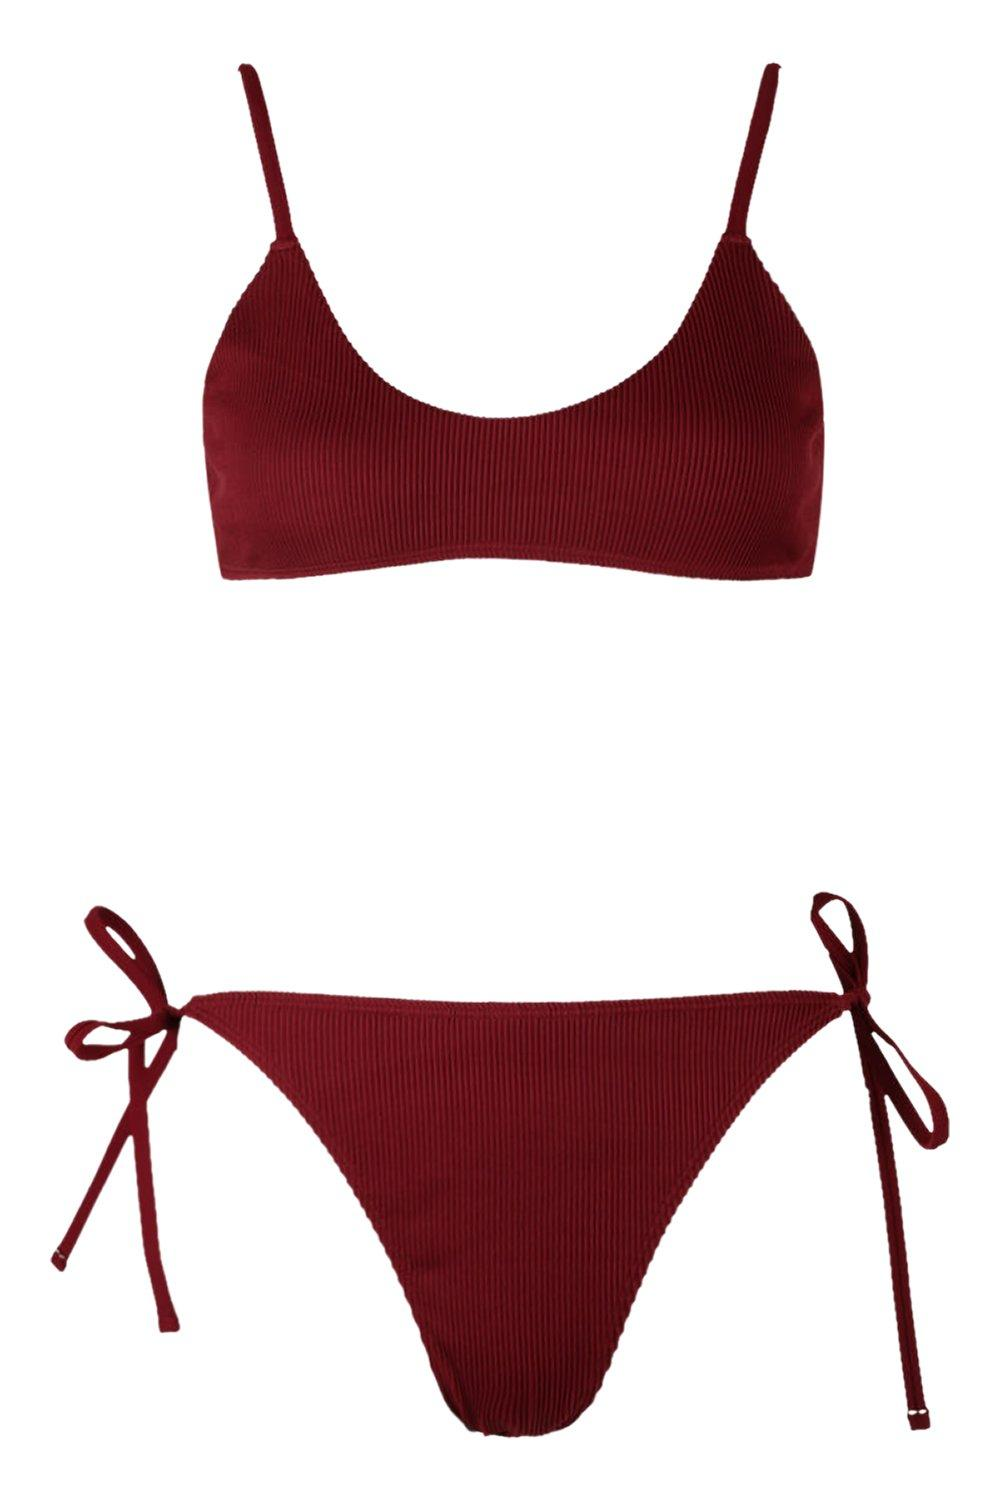 Ribbed red Back Bikini Tie Crop 7wqrA7B